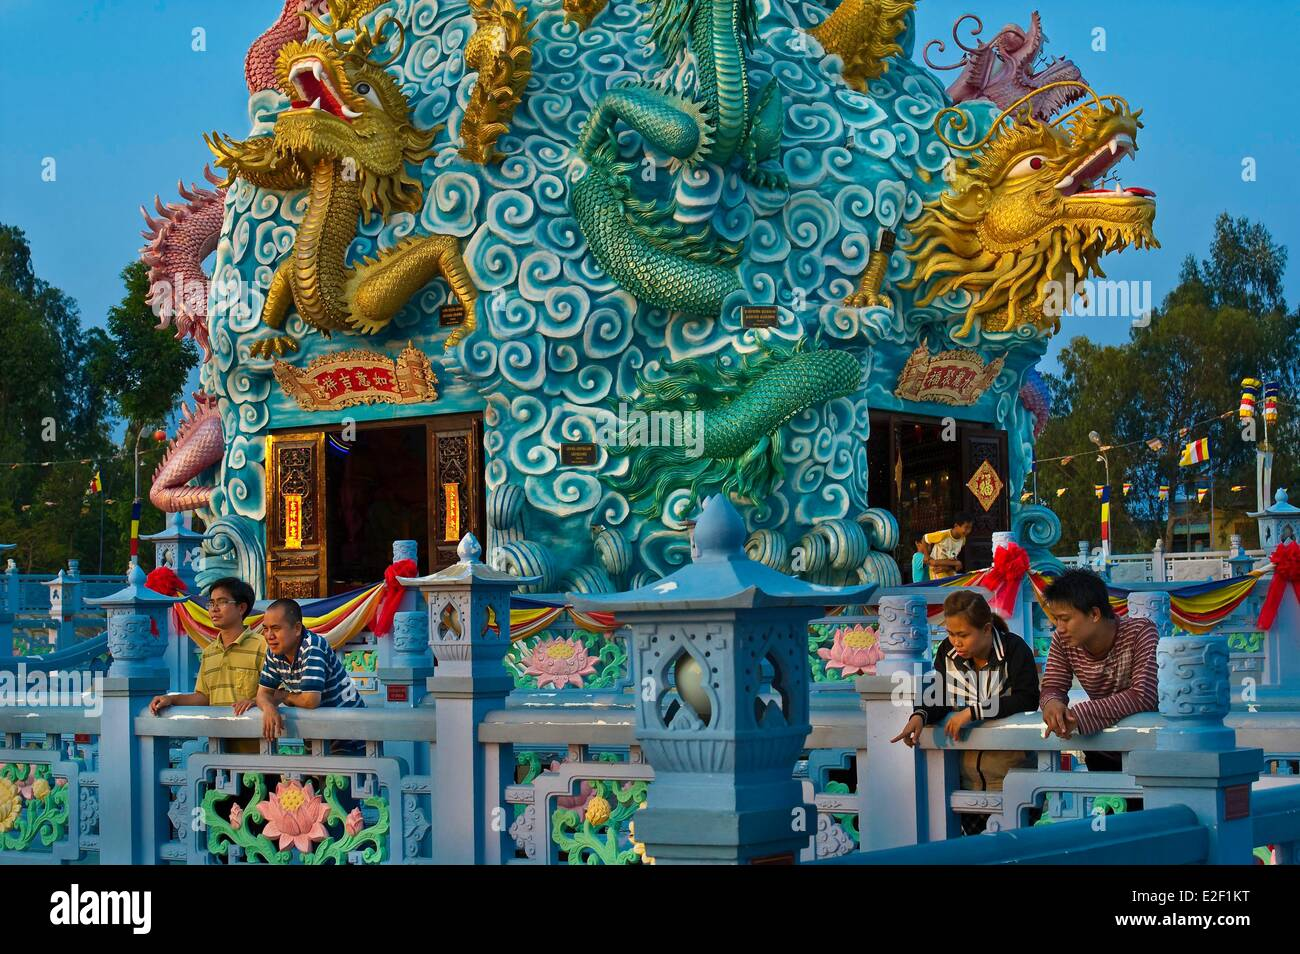 Vietnam An Giang Province Chau Doc Thien Khai Huynh Dao Buddhist temple symbolizing the Mekong river the river of - Stock Image